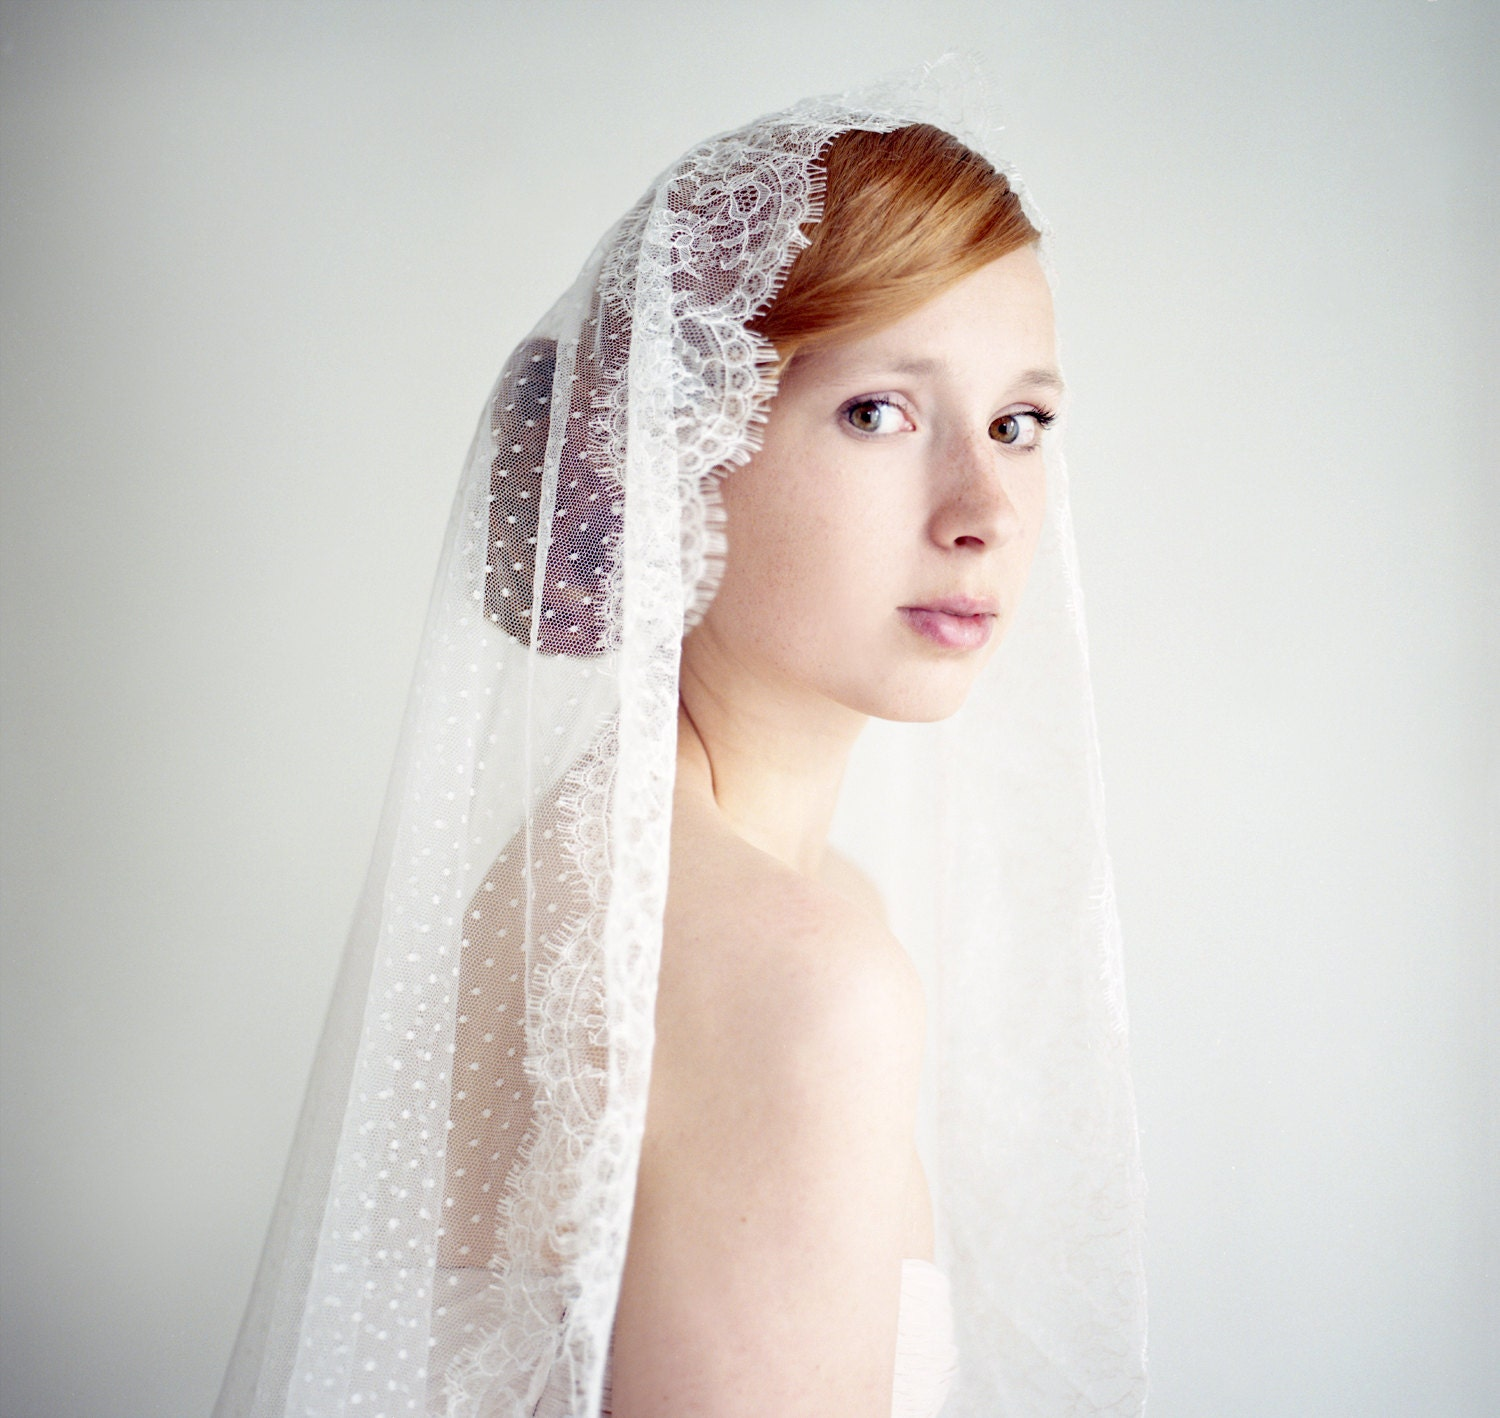 Types of Wedding Veils - Mantilla veils